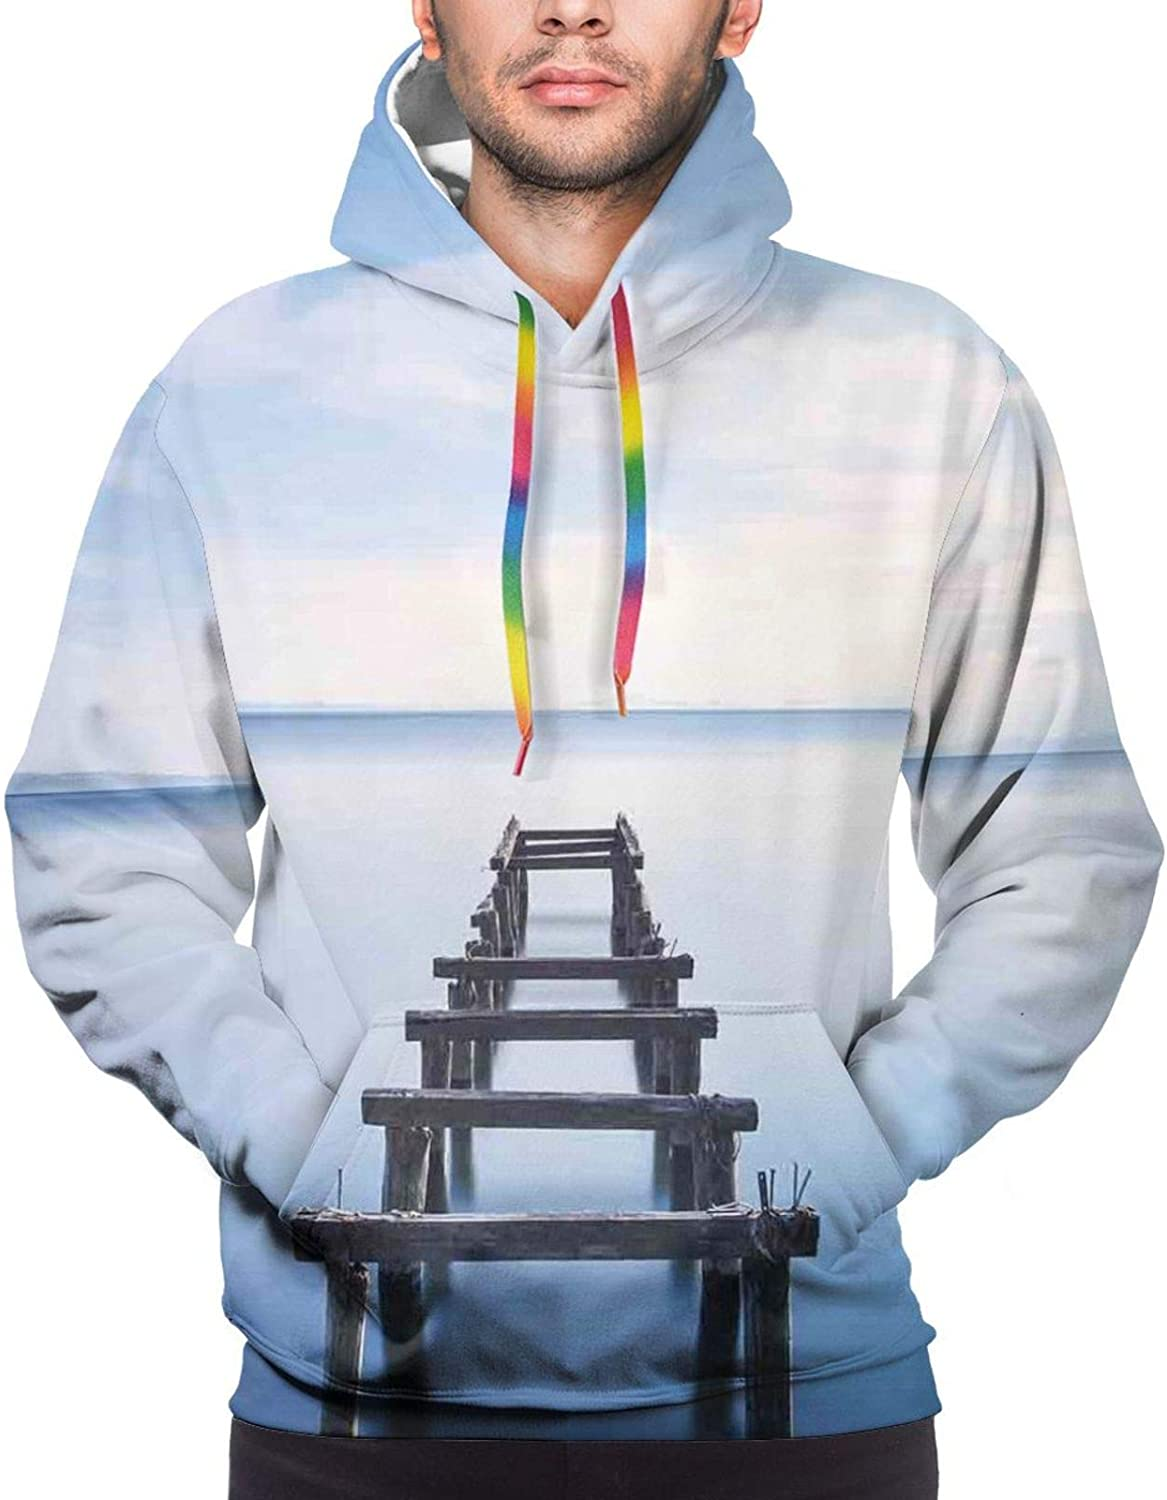 Men's Hoodies Sweatshirts,Old Houses in A Small Town Sea and Flower Pots at Windows Oil Painting Style